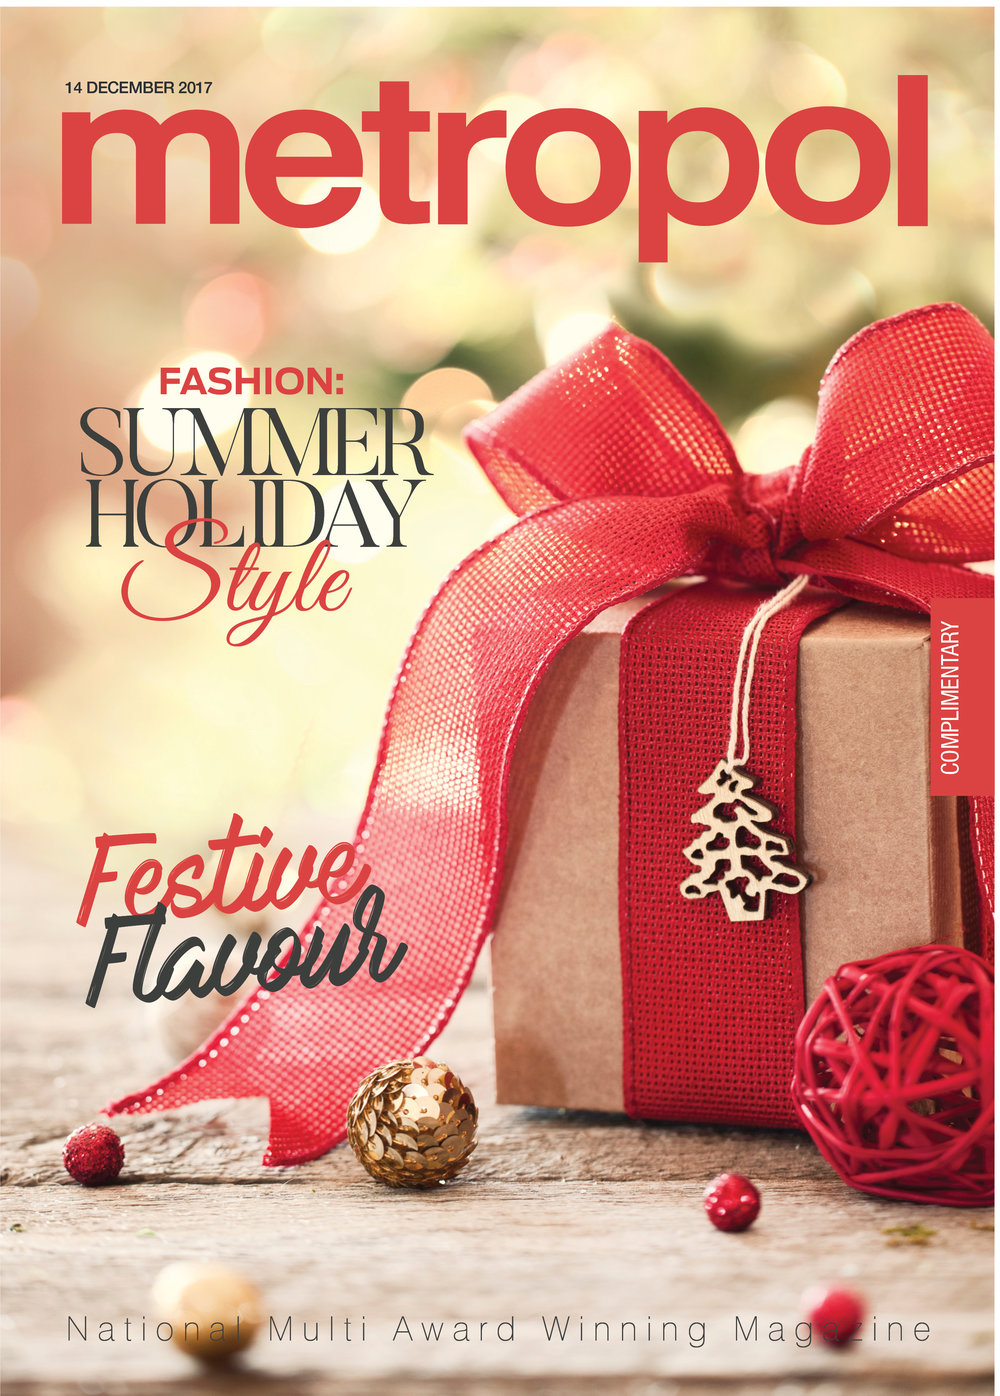 Read the Dec 14th 2017 issue of Metropol